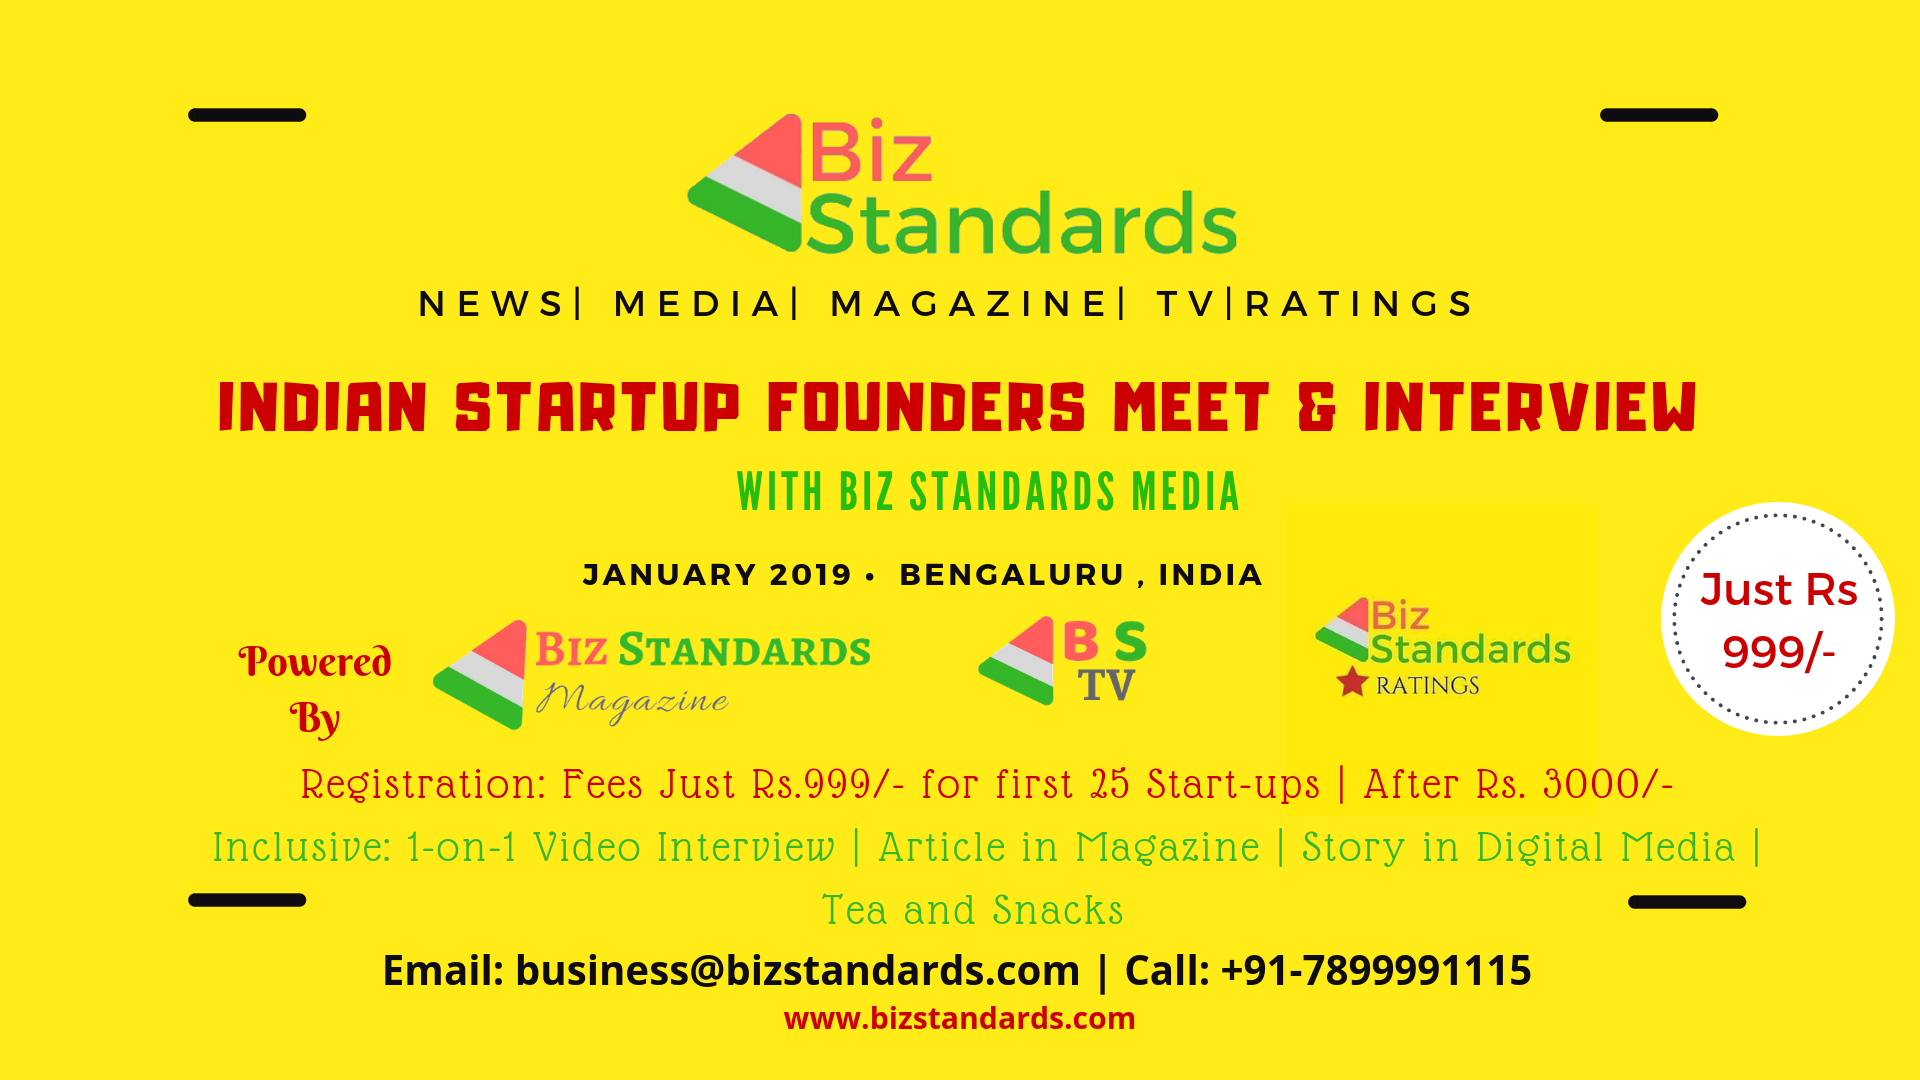 Indian Startup founders meet & interview with Biz Standards media